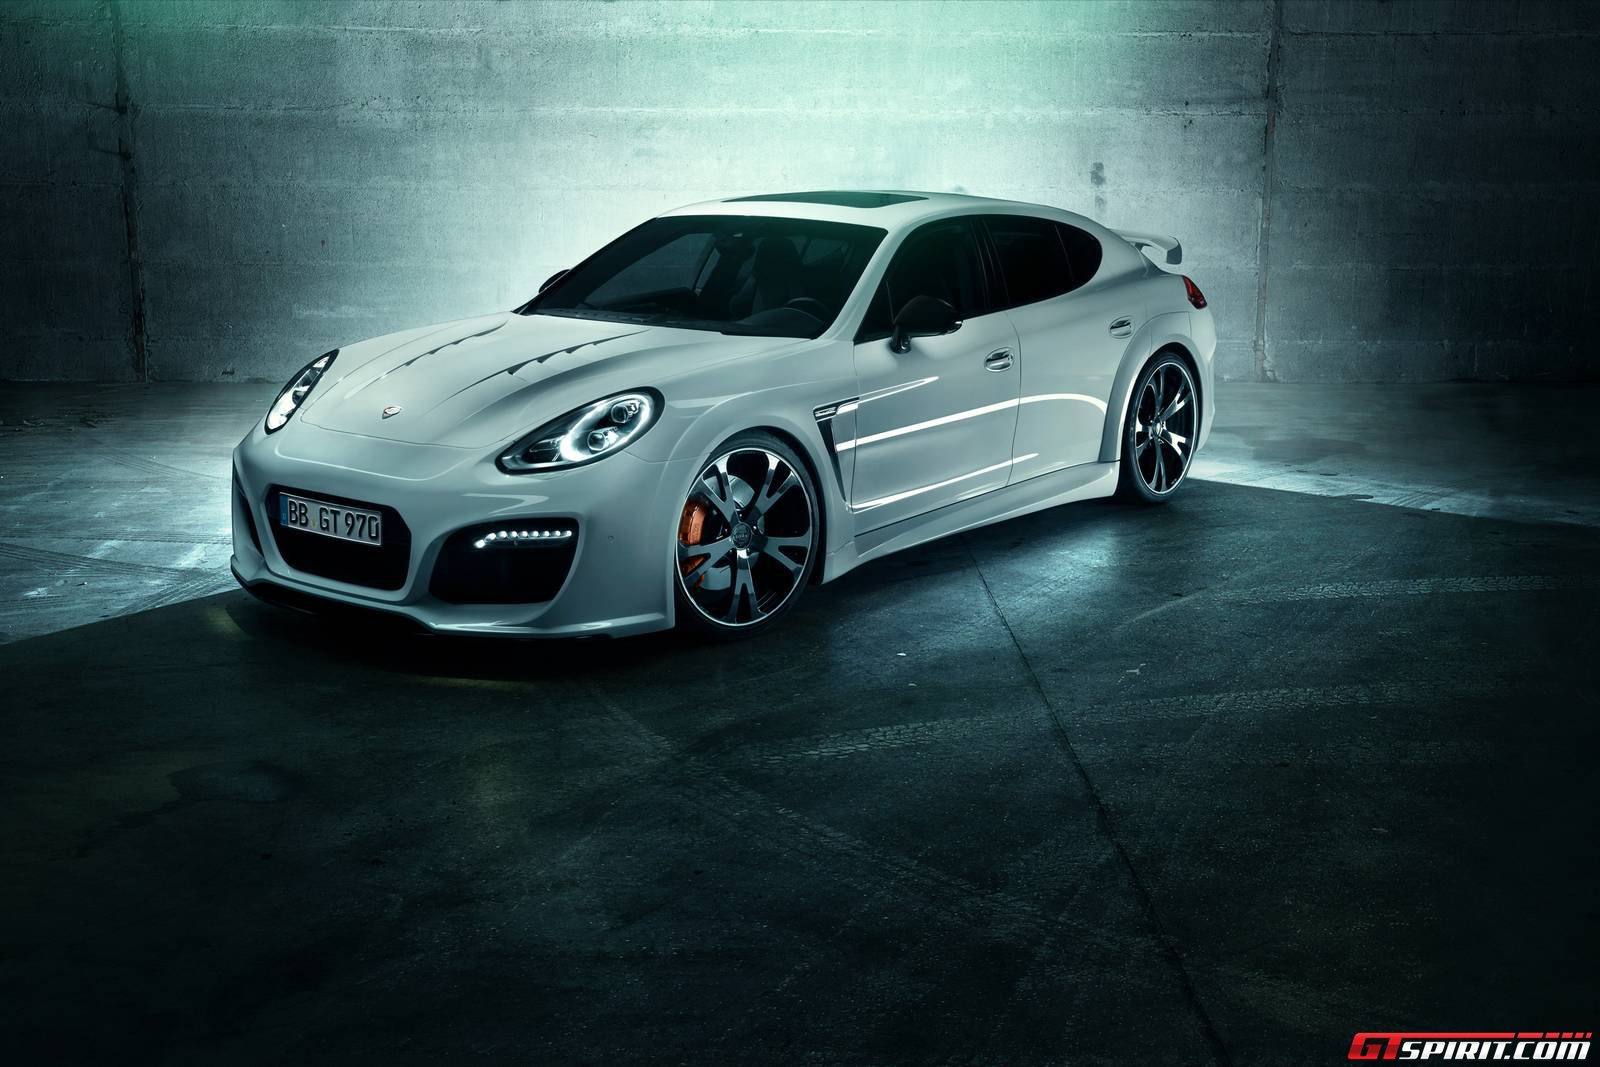 2014 porsche panamera interior car tuning - After Previewing Its Radical Porsche Panamera Package A Few Days Ago Techart Has Officially Revealed The Techart Grandgt Ahead Of Its World Debut At The